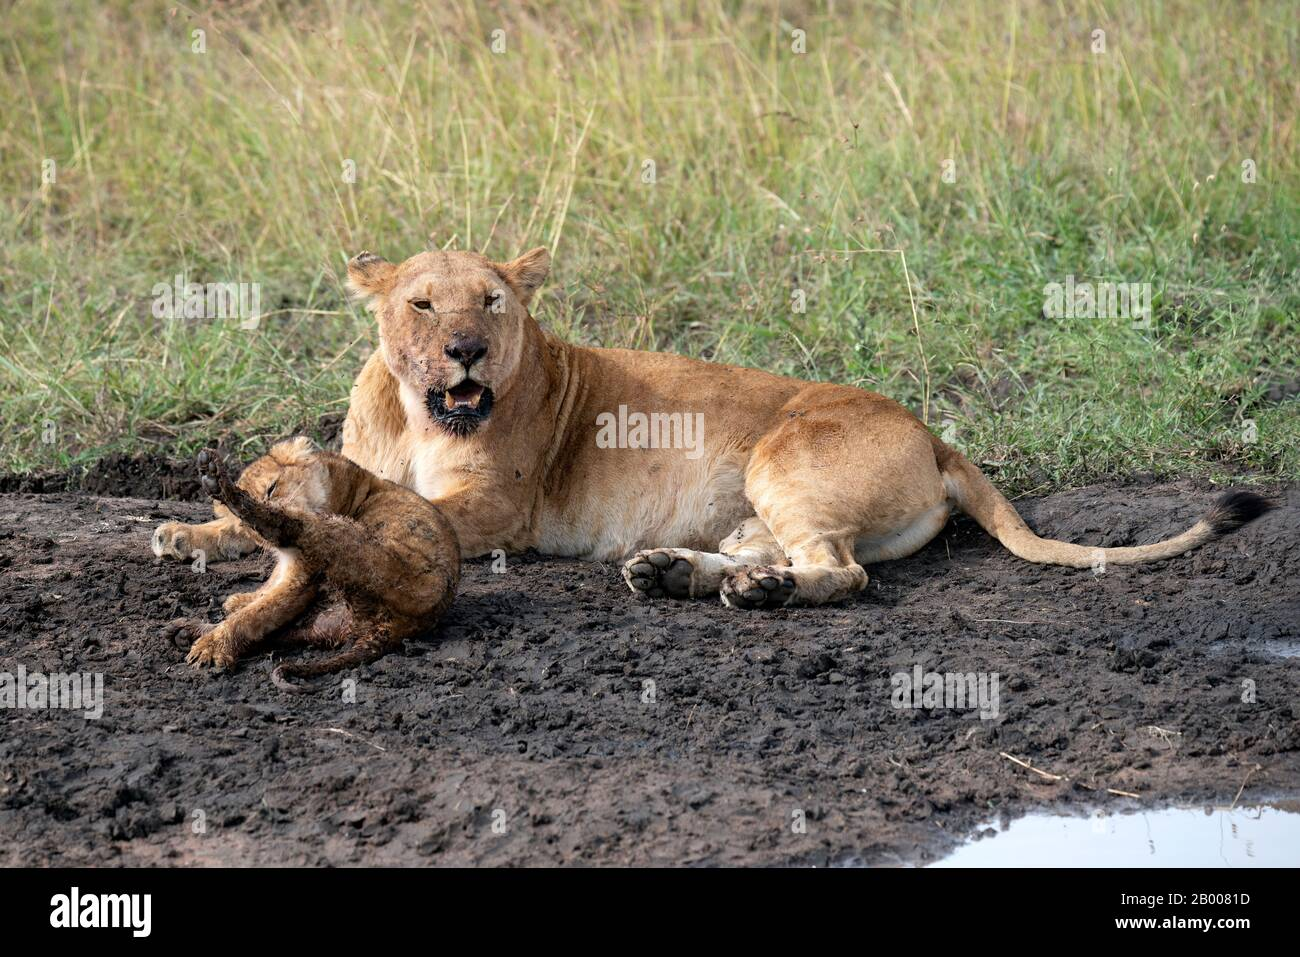 Mother and baby Lion resting in the mud after a meal Stock Photo